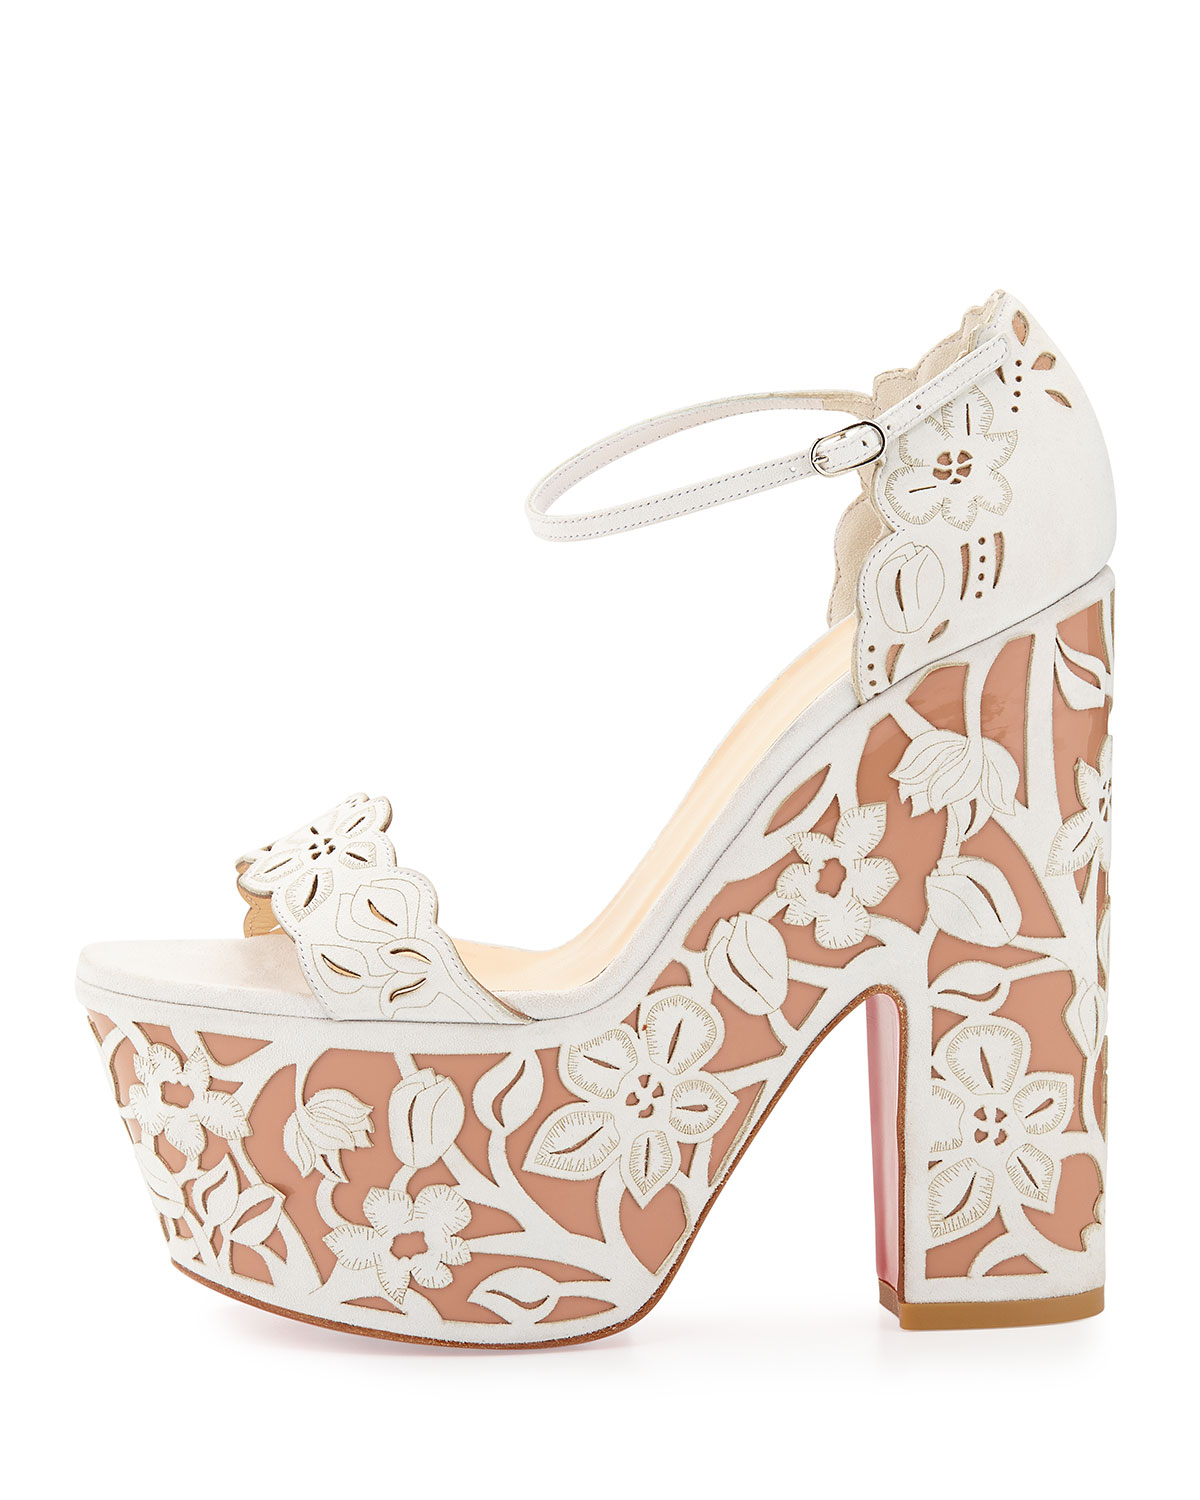 75bb472071a5 ... new zealand lyst christian louboutin houghton floral wedge red sole  sandal in 920fd 9d61f